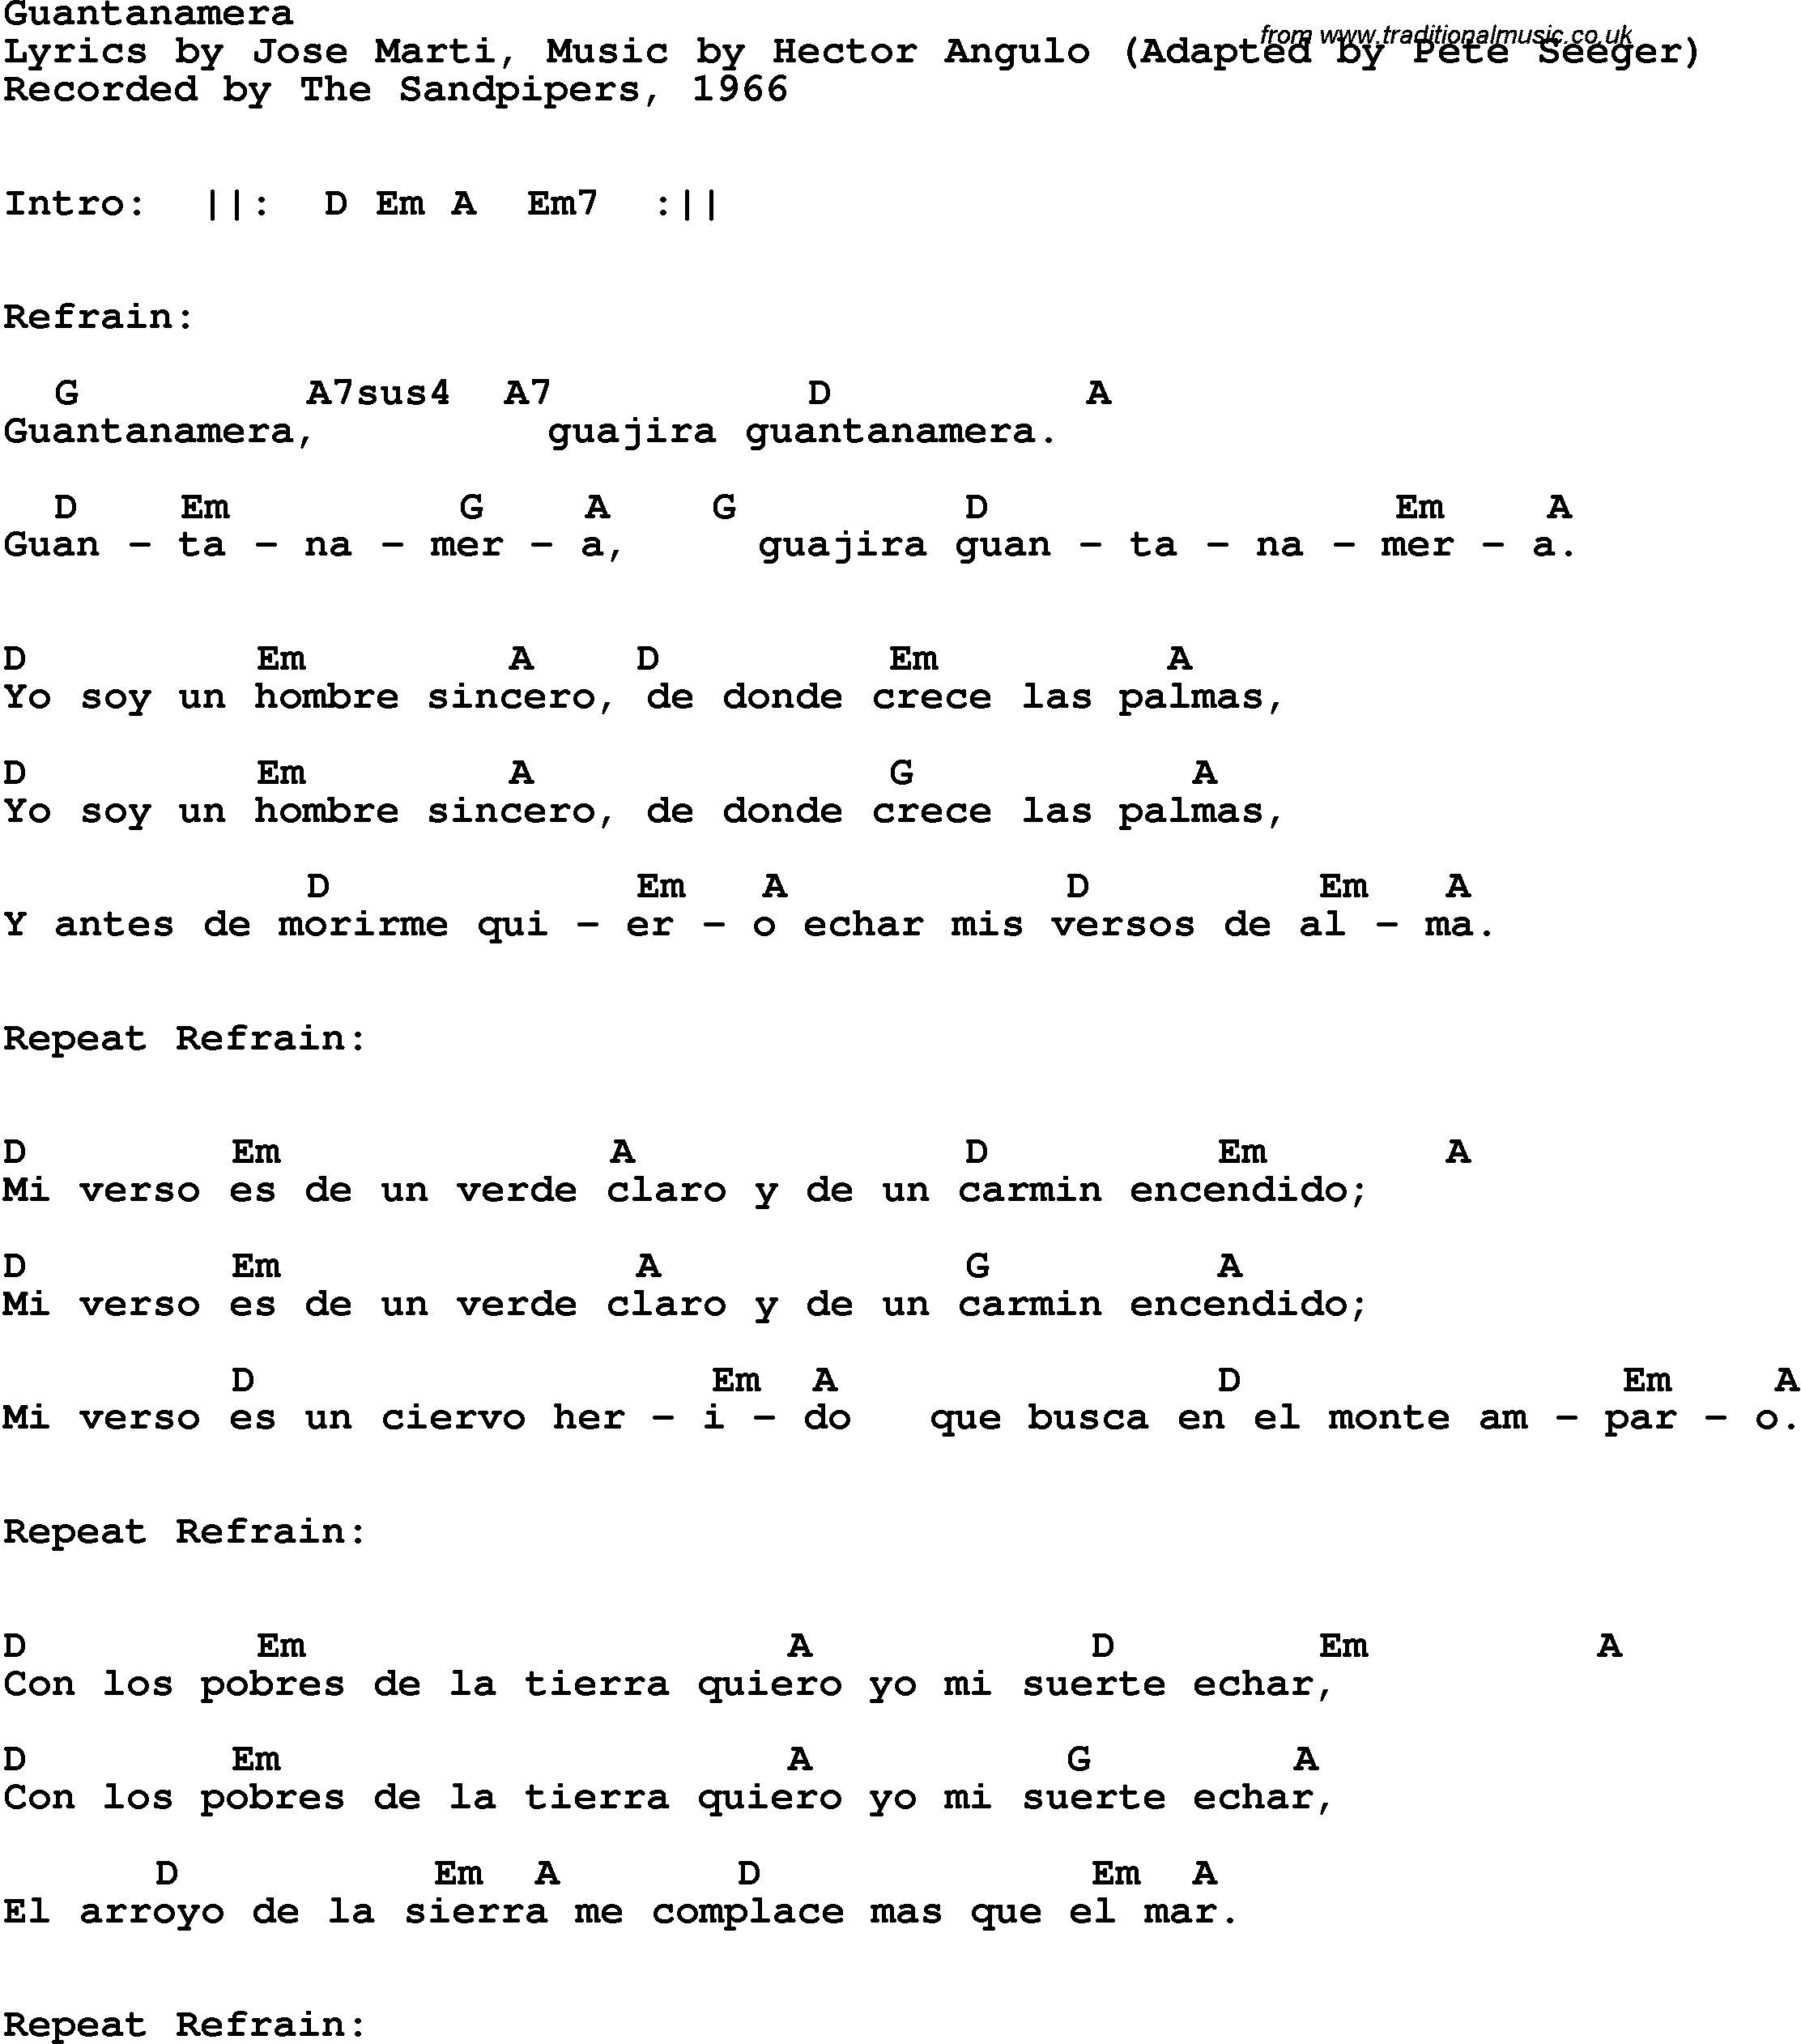 Song lyrics with guitar chords for guantanamera the sandpipers 1966 song lyrics with guitar chords for guantanamera the sandpipers 1966 hexwebz Image collections